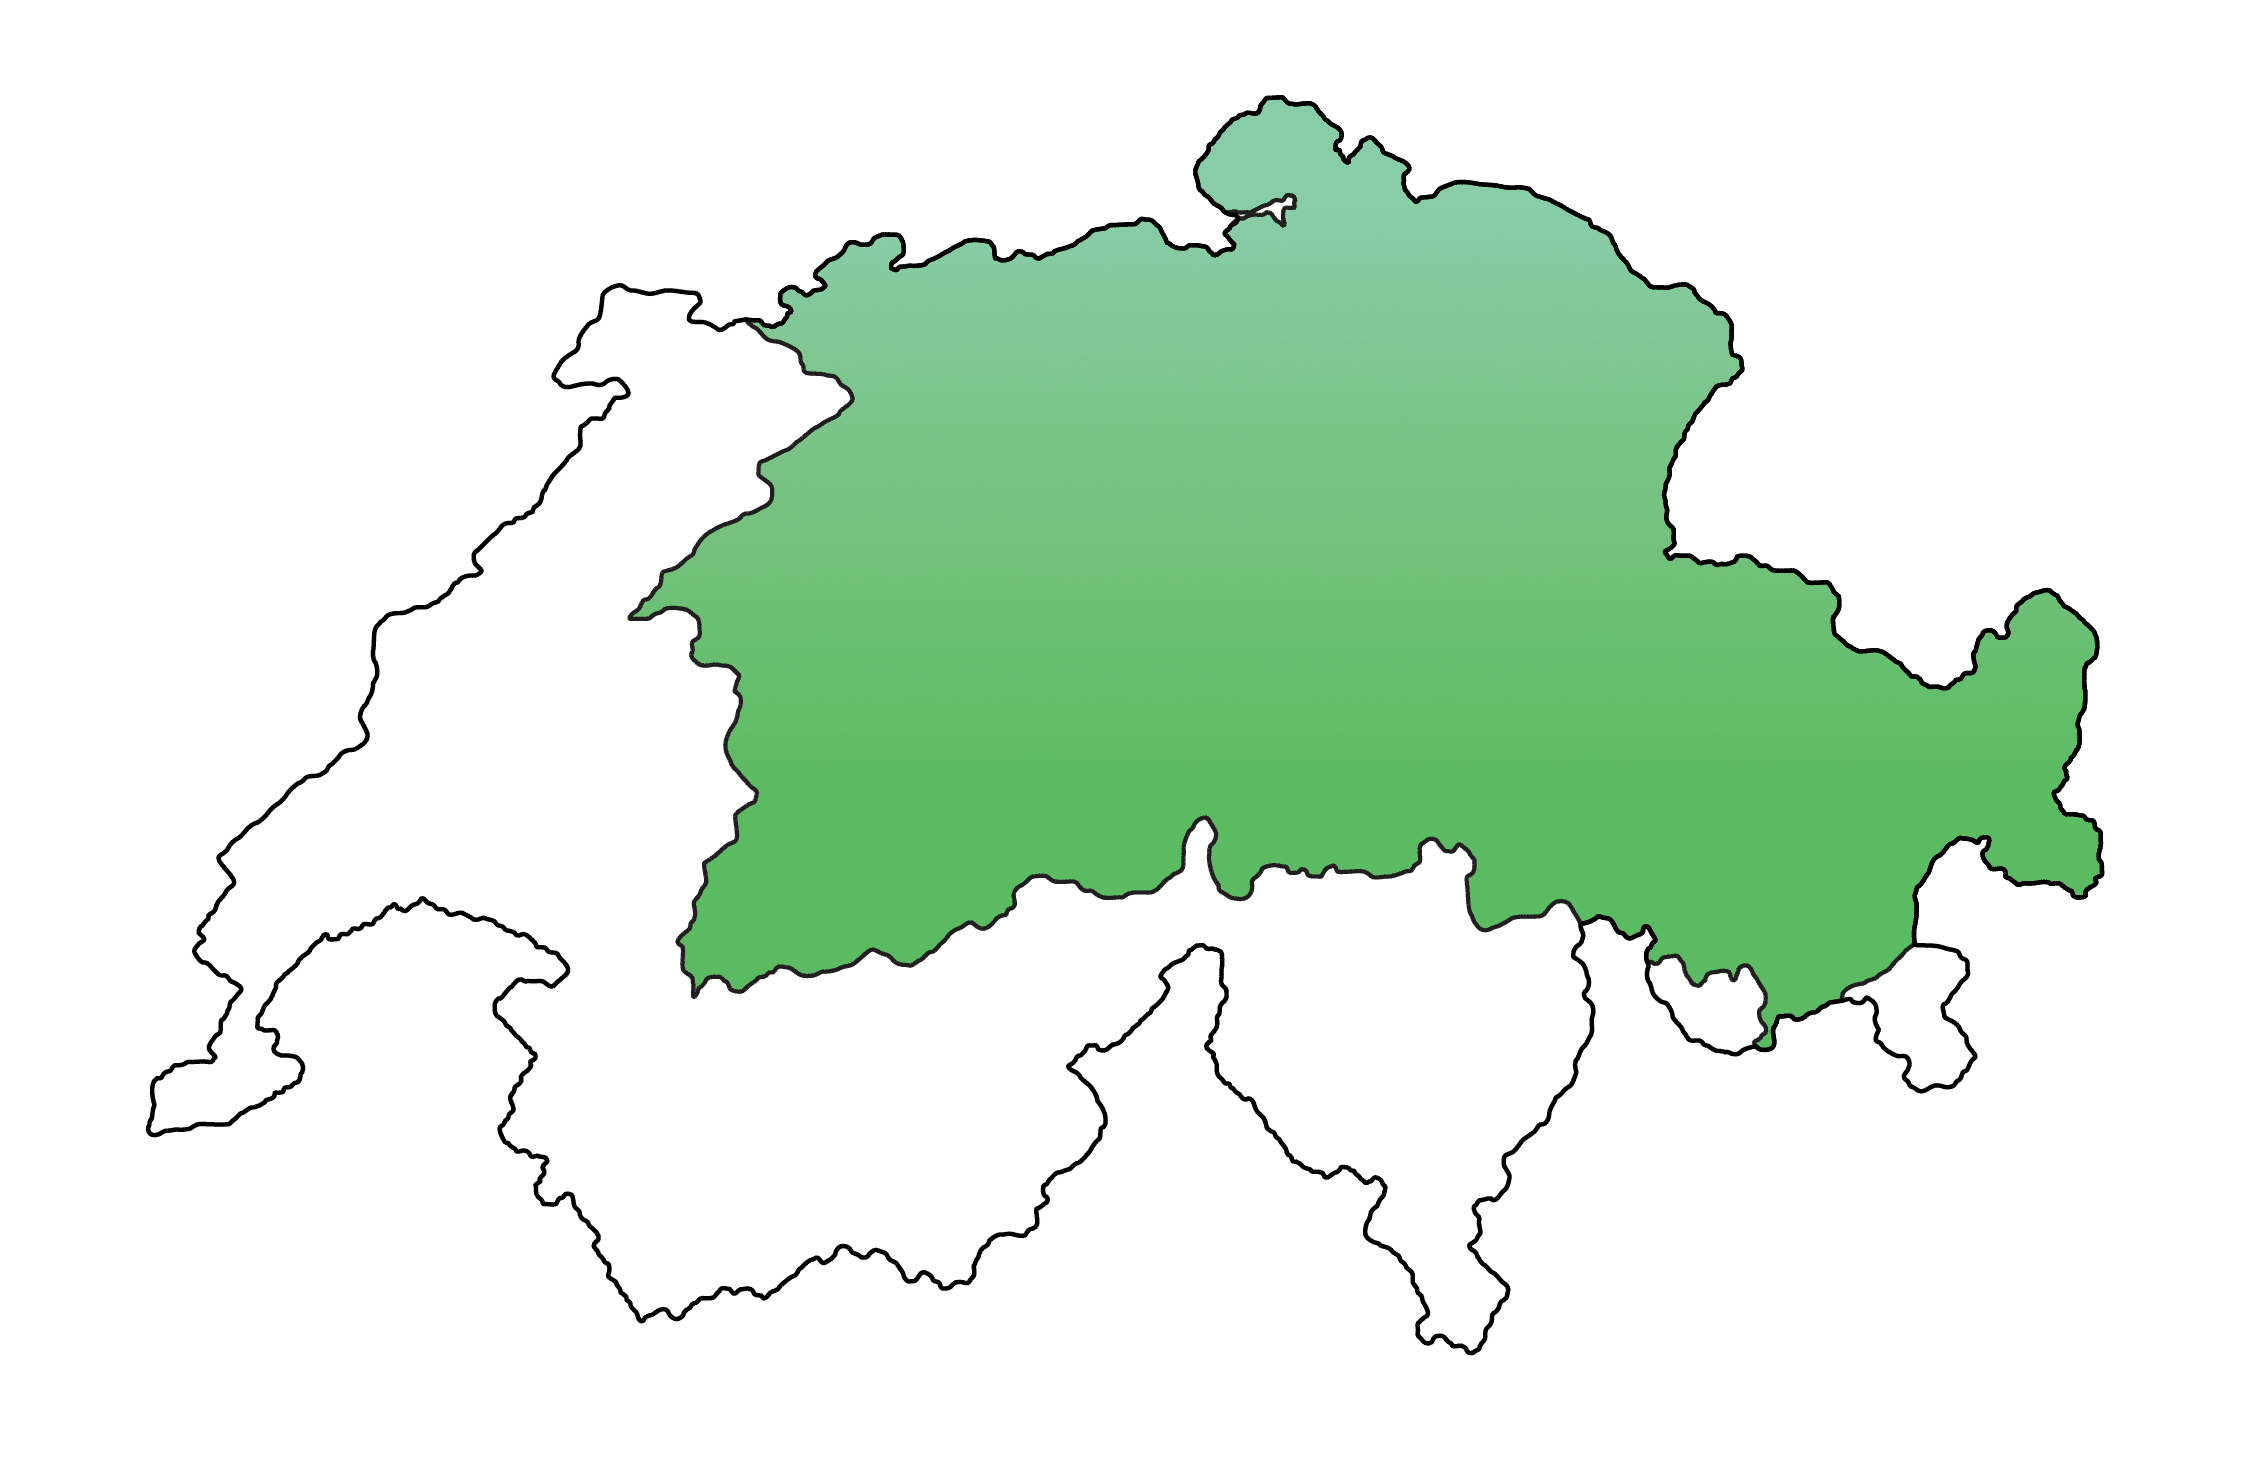 Swiss German vs. German - what is the difference?